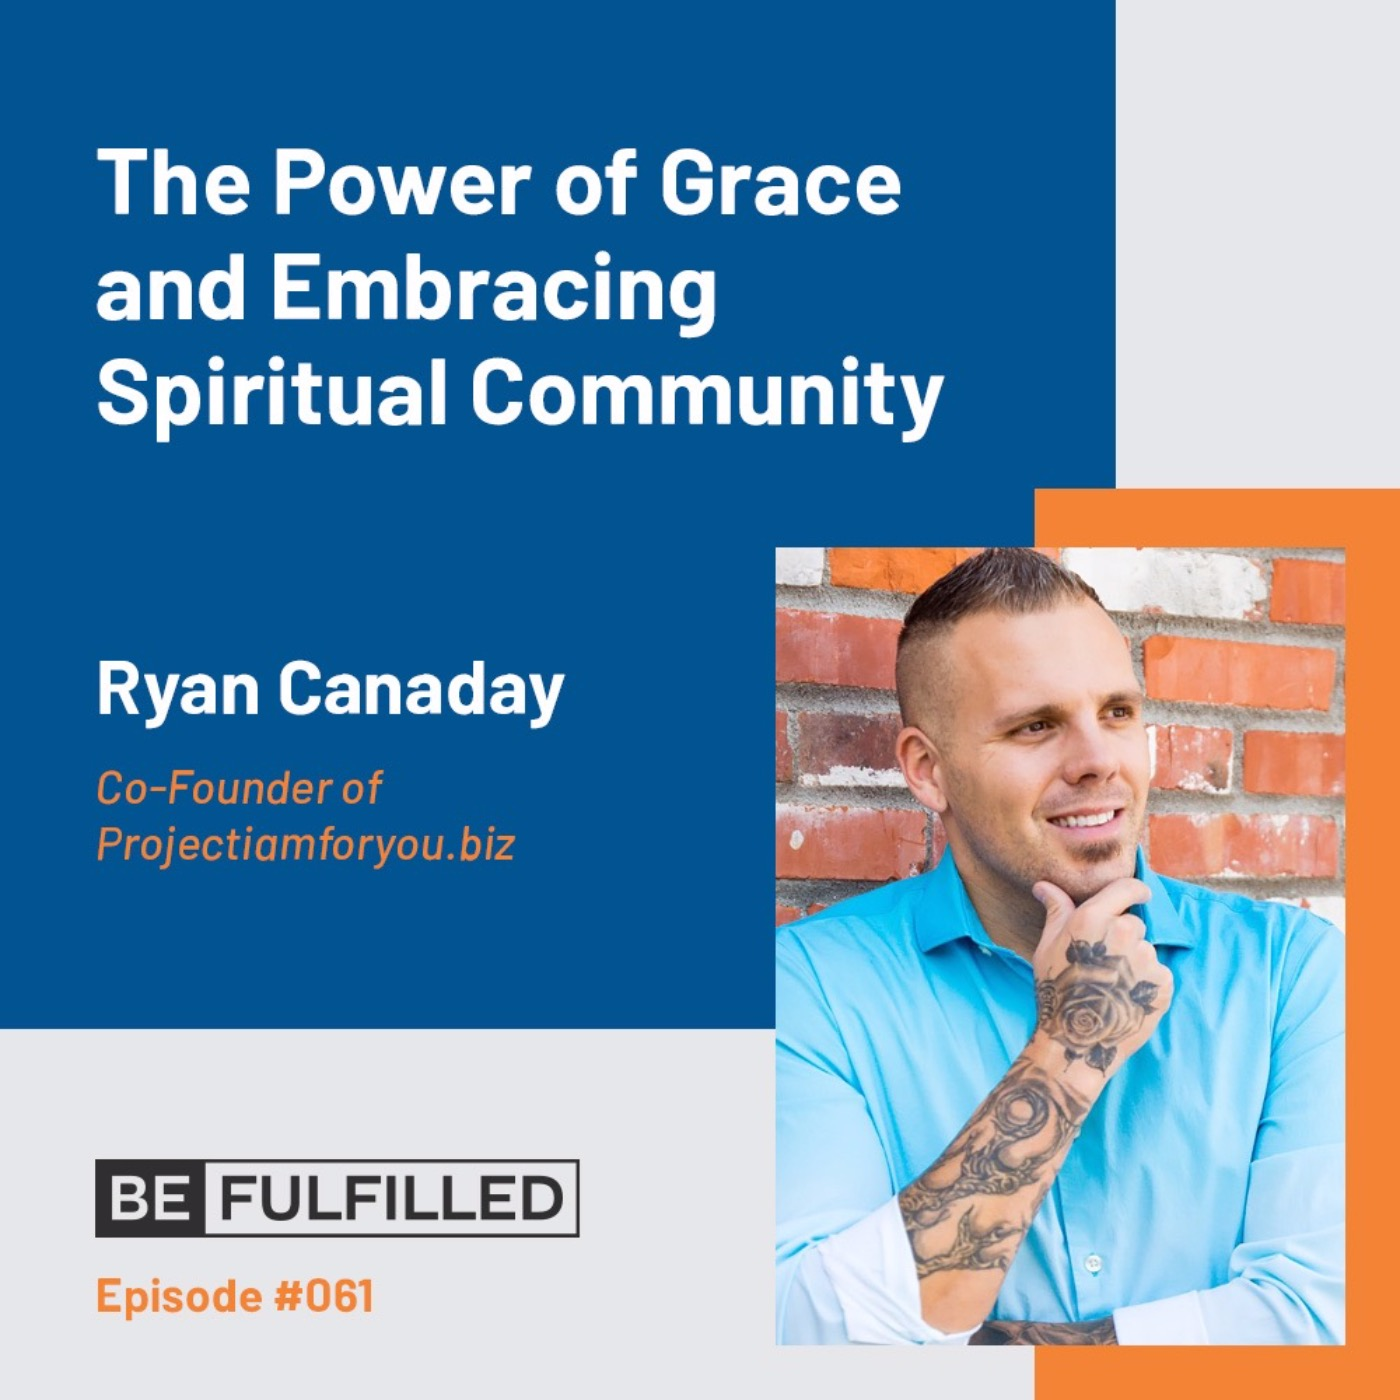 The Power of Grace and Embracing Spiritual Community - Ryan Canaday